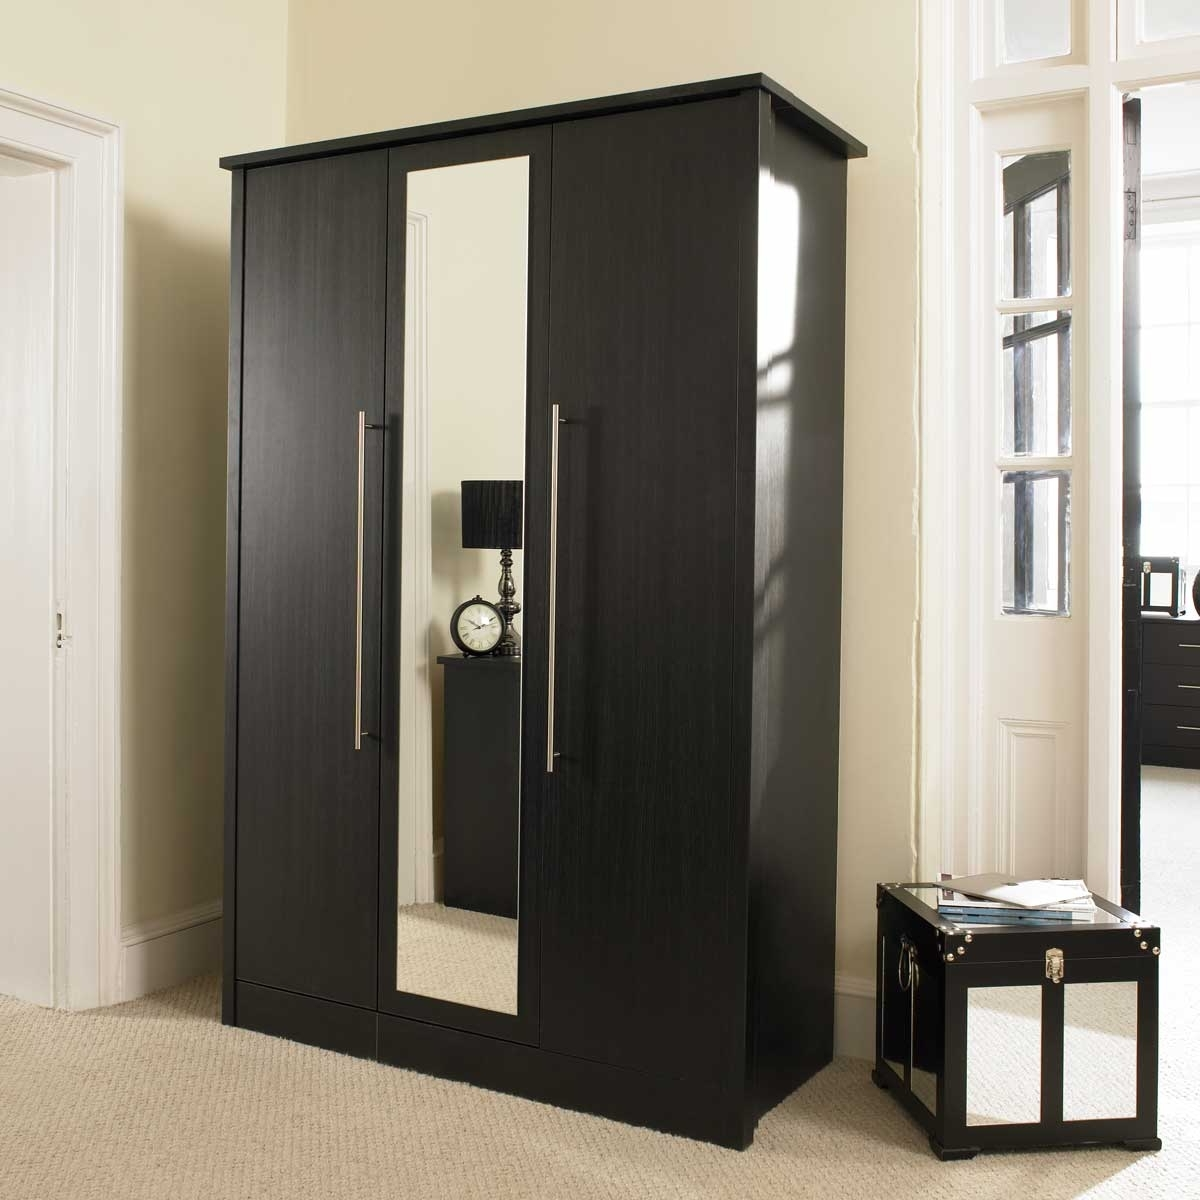 Widely Used Luxury Bedroom With Black Wardrobe With Mirror Doors, Top Wardrobe Pertaining To 3 Door Mirrored Wardrobes (View 15 of 15)